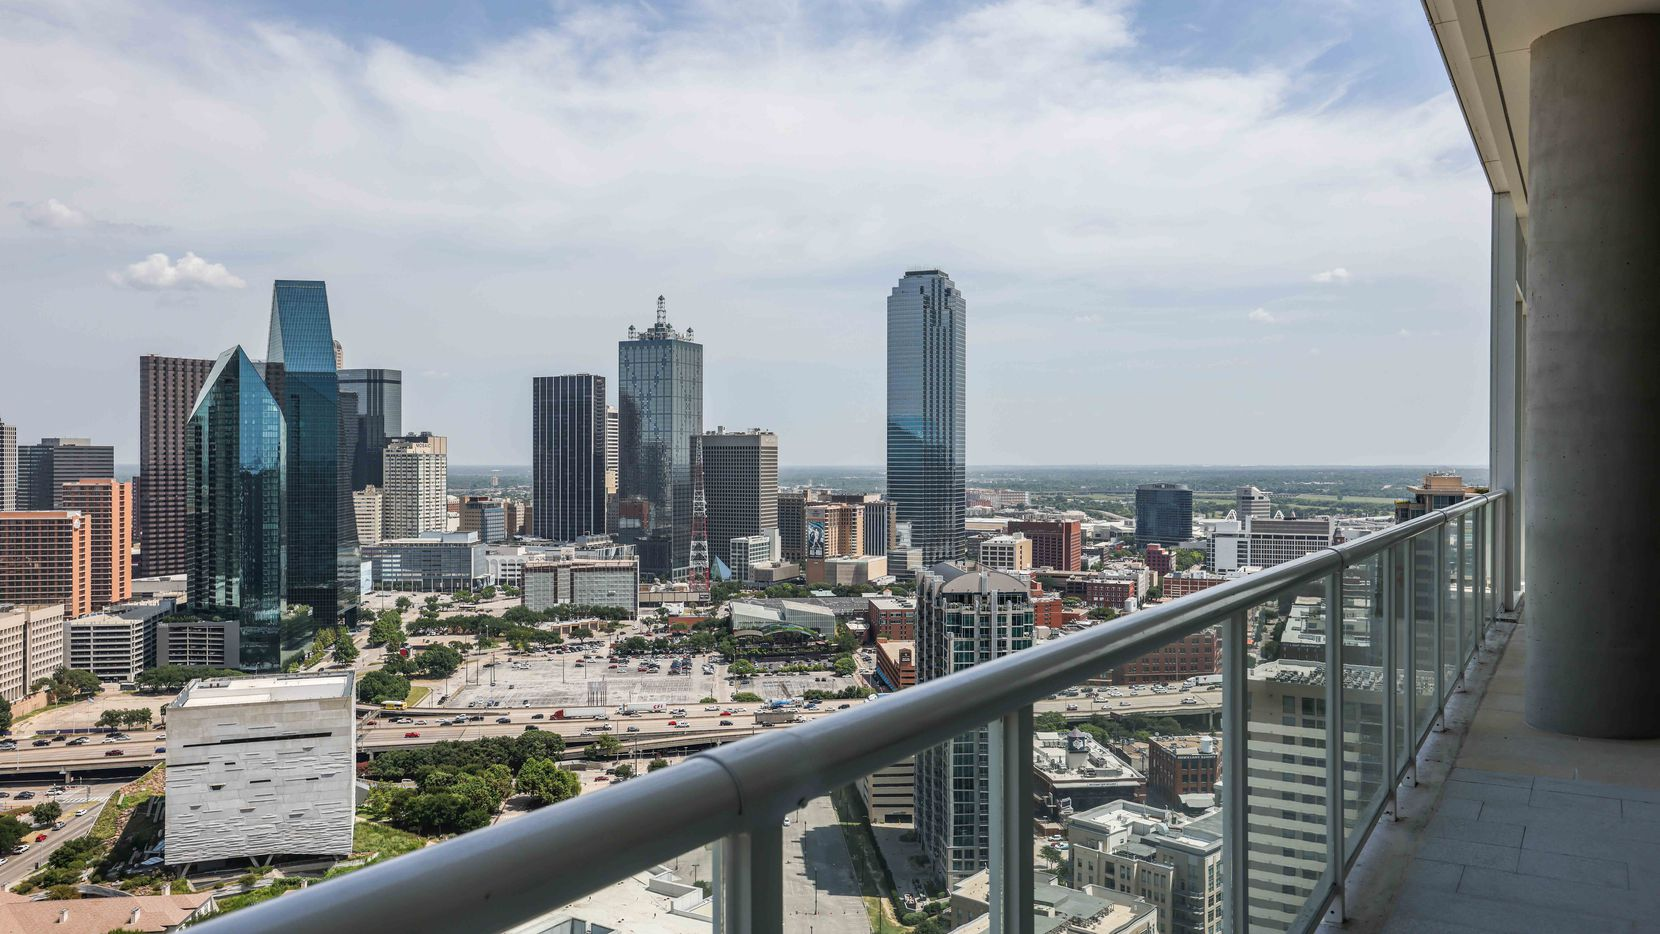 View from upcoming Vic's Lounge and Skyline Terrace, a 37th level amenity space at The Victor in Dallas on Tuesday, July 27, 2021. (Lola Gomez/The Dallas Morning News)